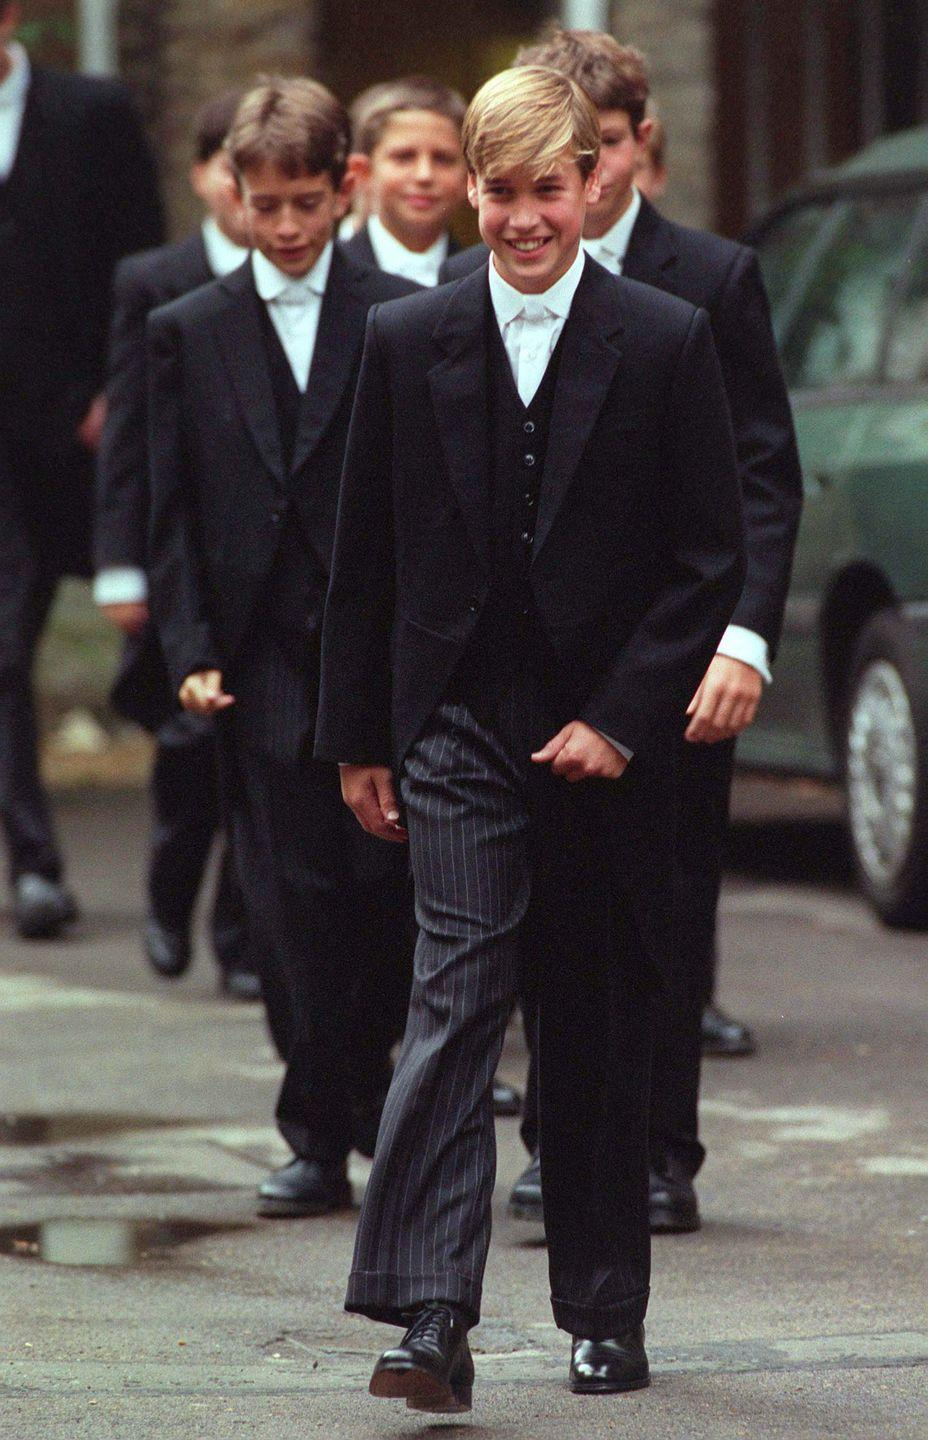 <p>Prince William looked proud as punch marching into his first day at Eton College on September 16, 1995. And didn't he look smart wearing the traditional fancy Eton uniform - a black tailcoat, black waistcoat, pinstriped trousers and white tie?</p>